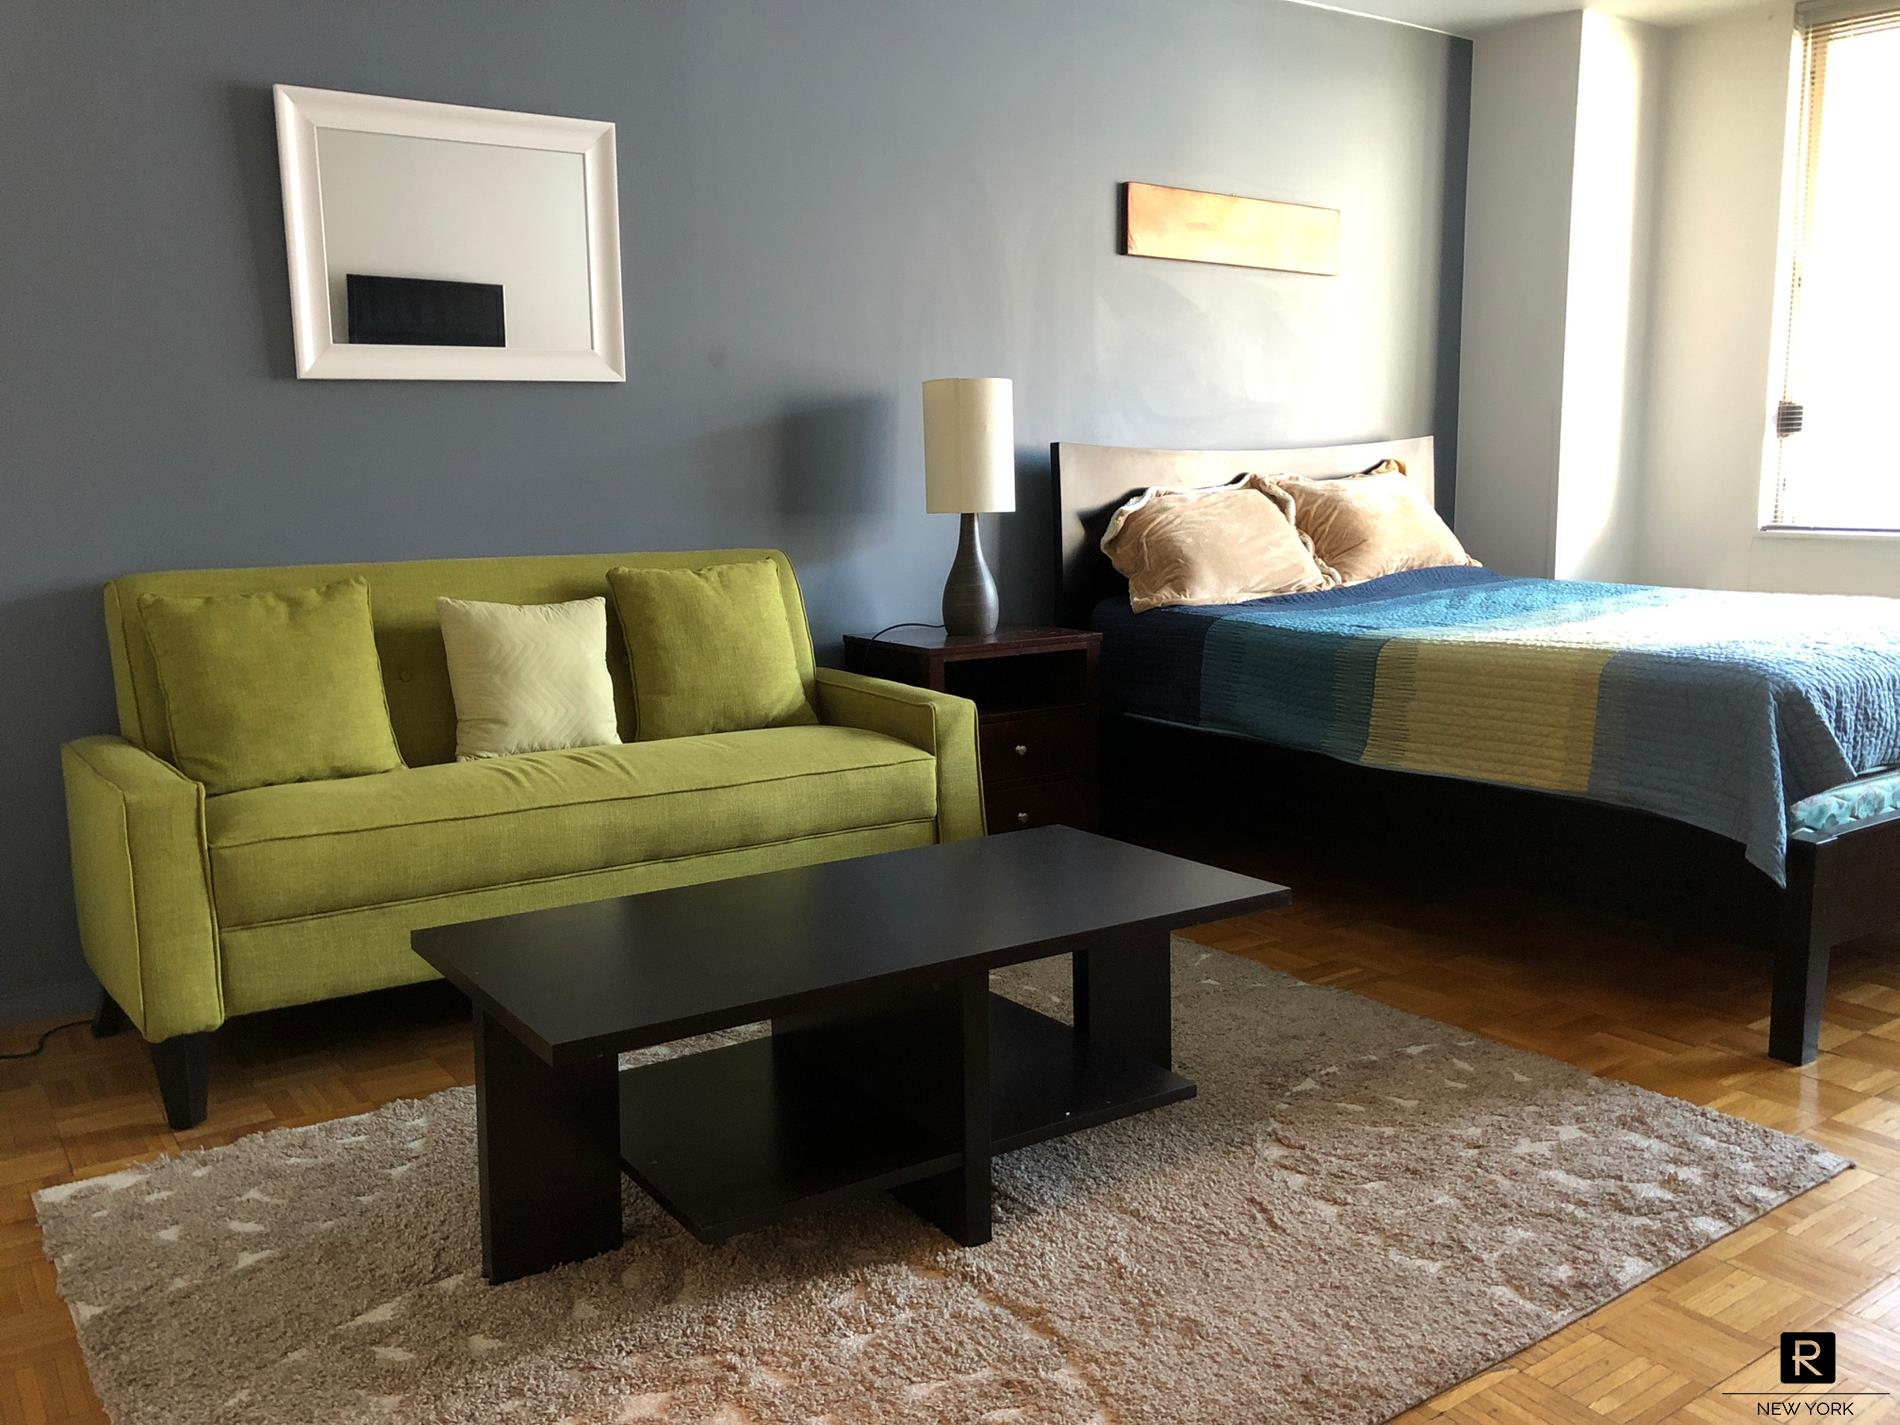 Furnished studio in 24-hour doorman buildingRenovated kitchen and bathroomSunny and quiet unit facing a court yardSubway 1, C, E, N, R, WInquire short term